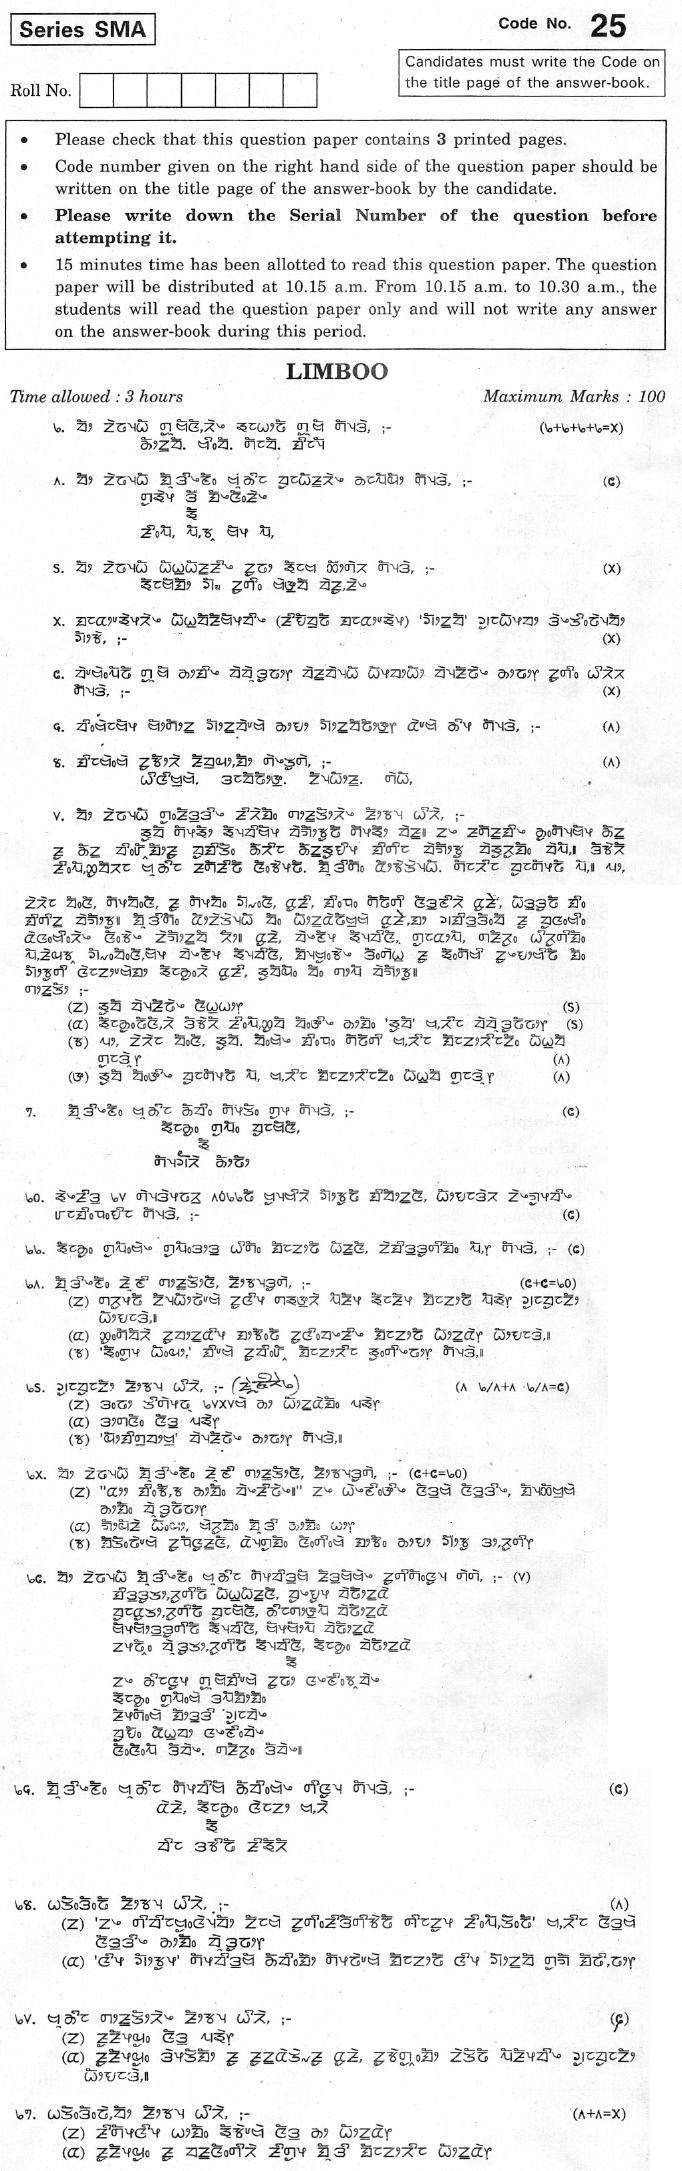 CBSE Class XII Previous Year Question Paper 2012 Limboo